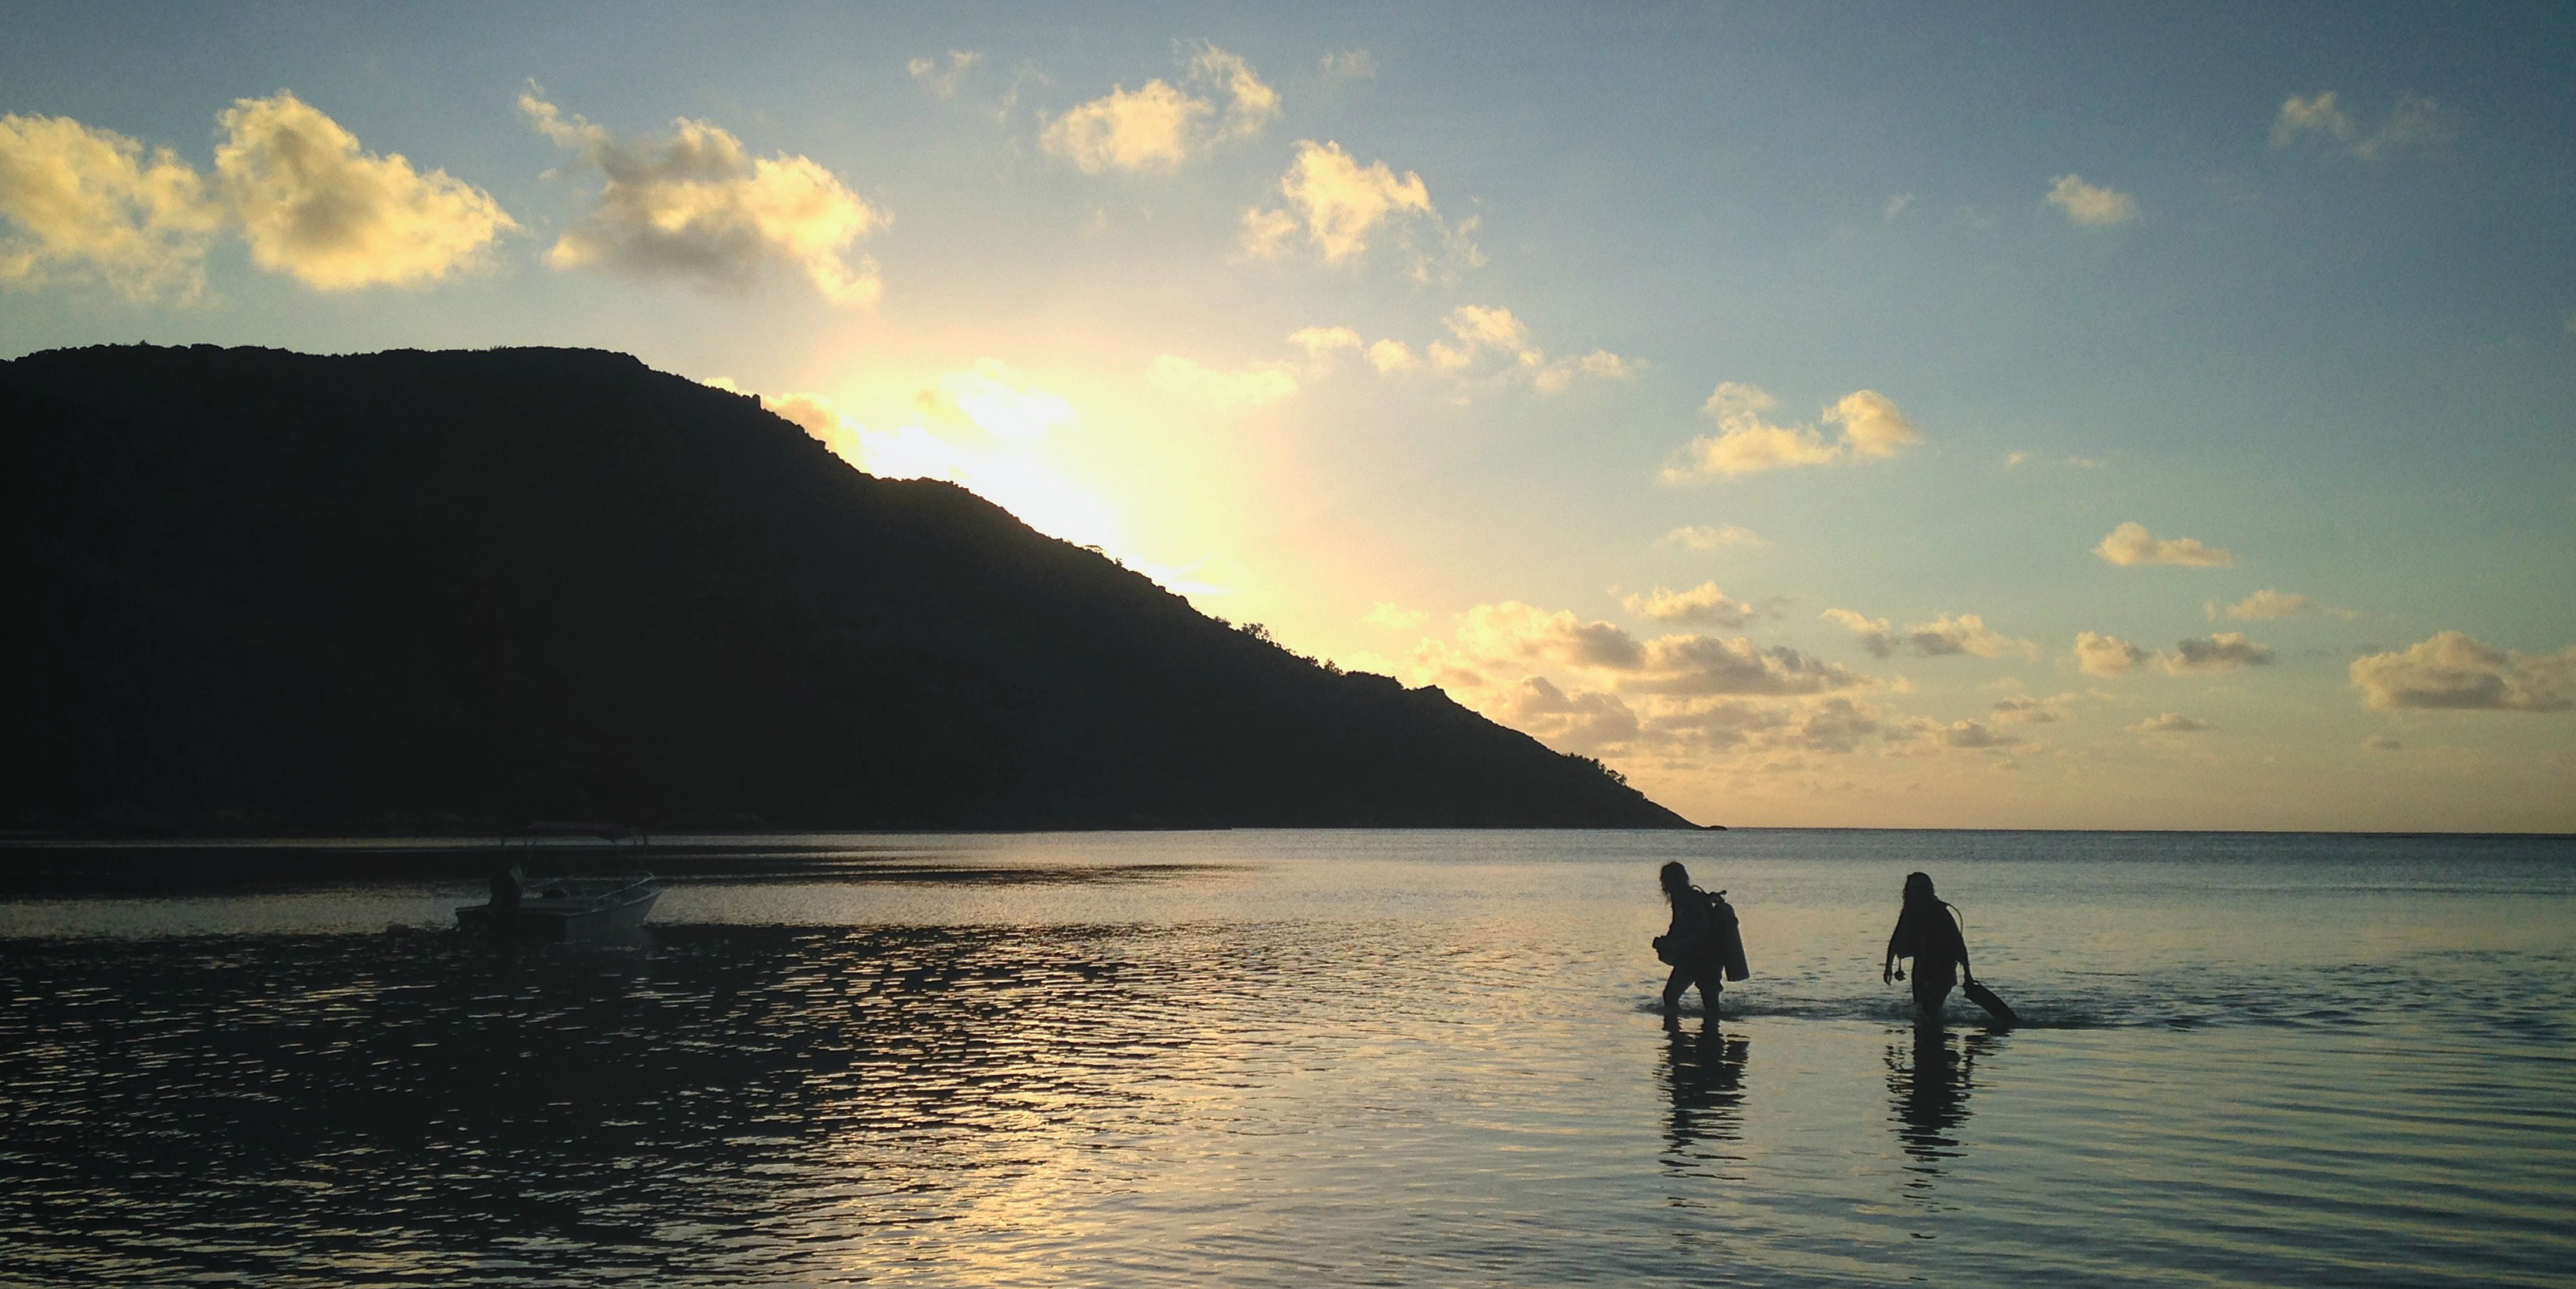 GVI participants in Mahe, Seychelles return home after a day of collecting marine conservation data.